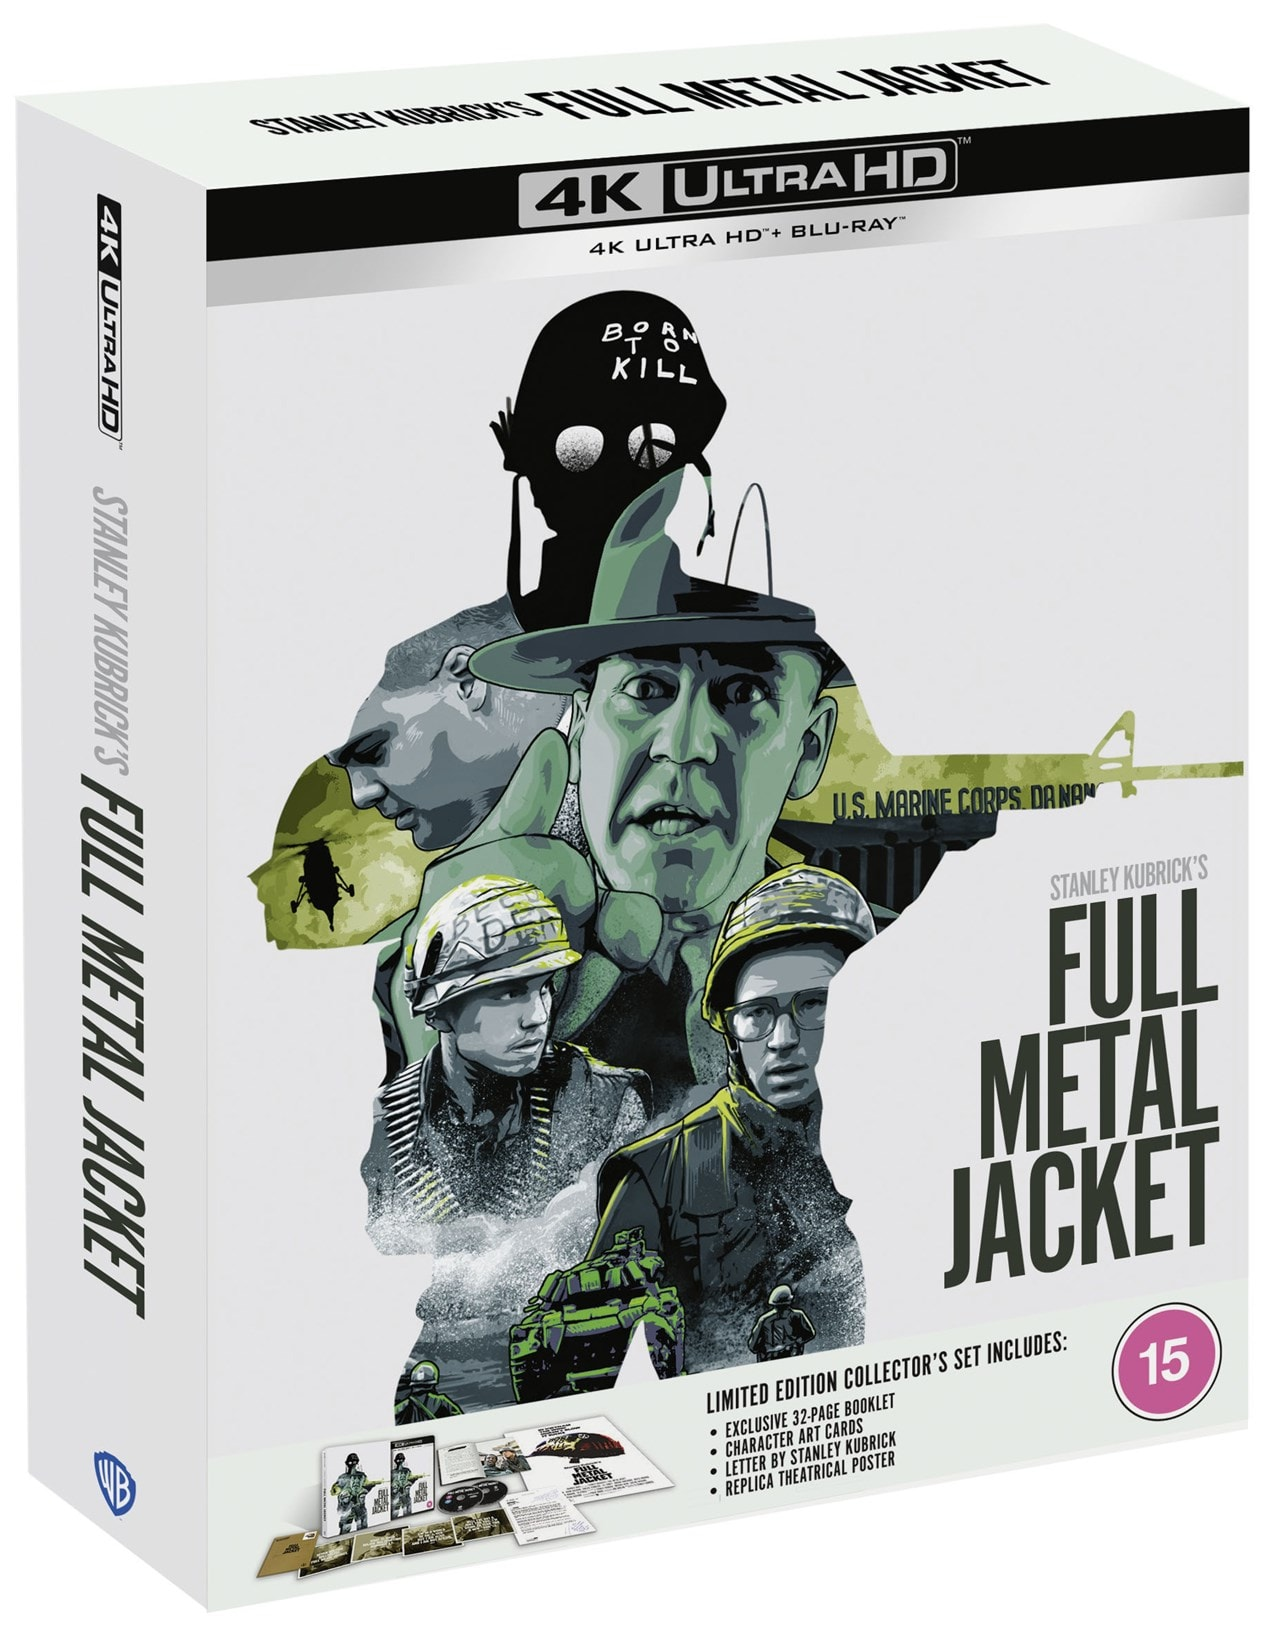 Full Metal Jacket Ultimate Collector's Edition - 3